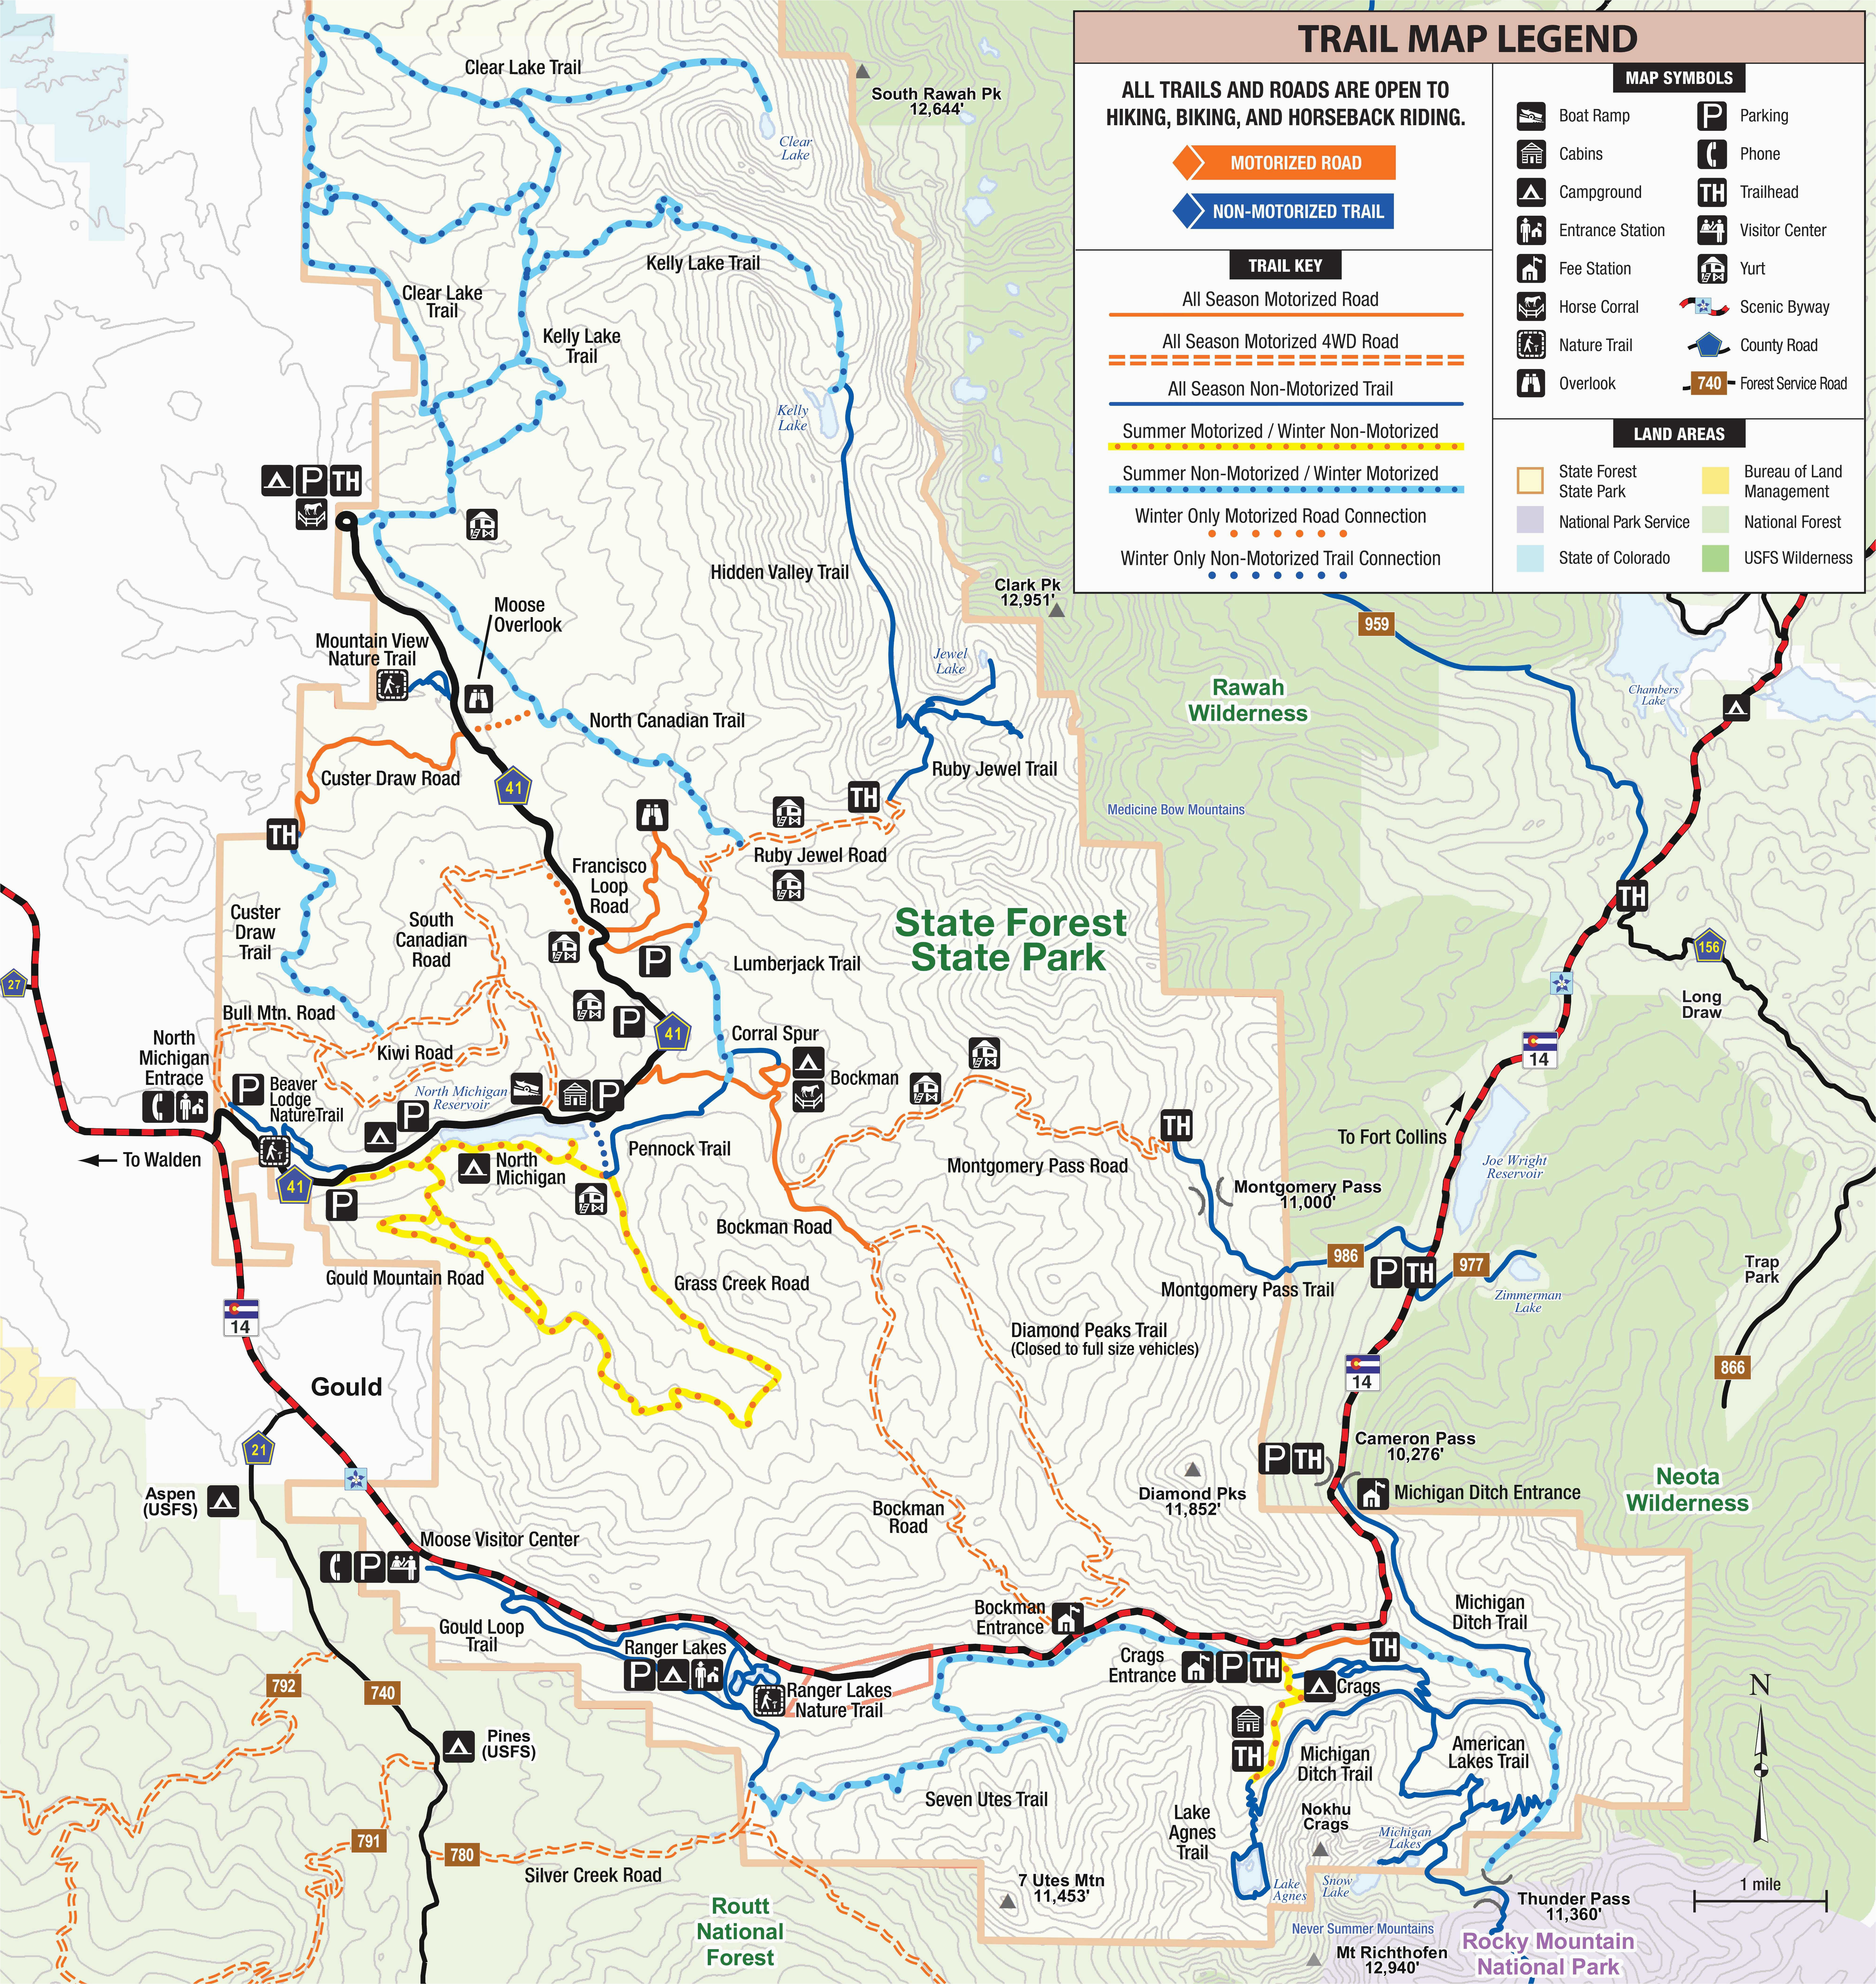 map of colorado parks, map of colorado points of interest, map of colorado hotels, map of colorado lakes, map of colorado sand dunes, map of colorado shooting, map of colorado driving, map of colorado things to do, map of colorado glaciers, map of colorado scenic drives, map of colorado royal gorge bridge, map of colorado national forests, map of colorado zip lines, map of colorado united states, map of colorado small towns, map of colorado train rides, map of colorado mining towns, map of colorado water, map of colorado 13ers, map of colorado historical markers, on camping map of colorado